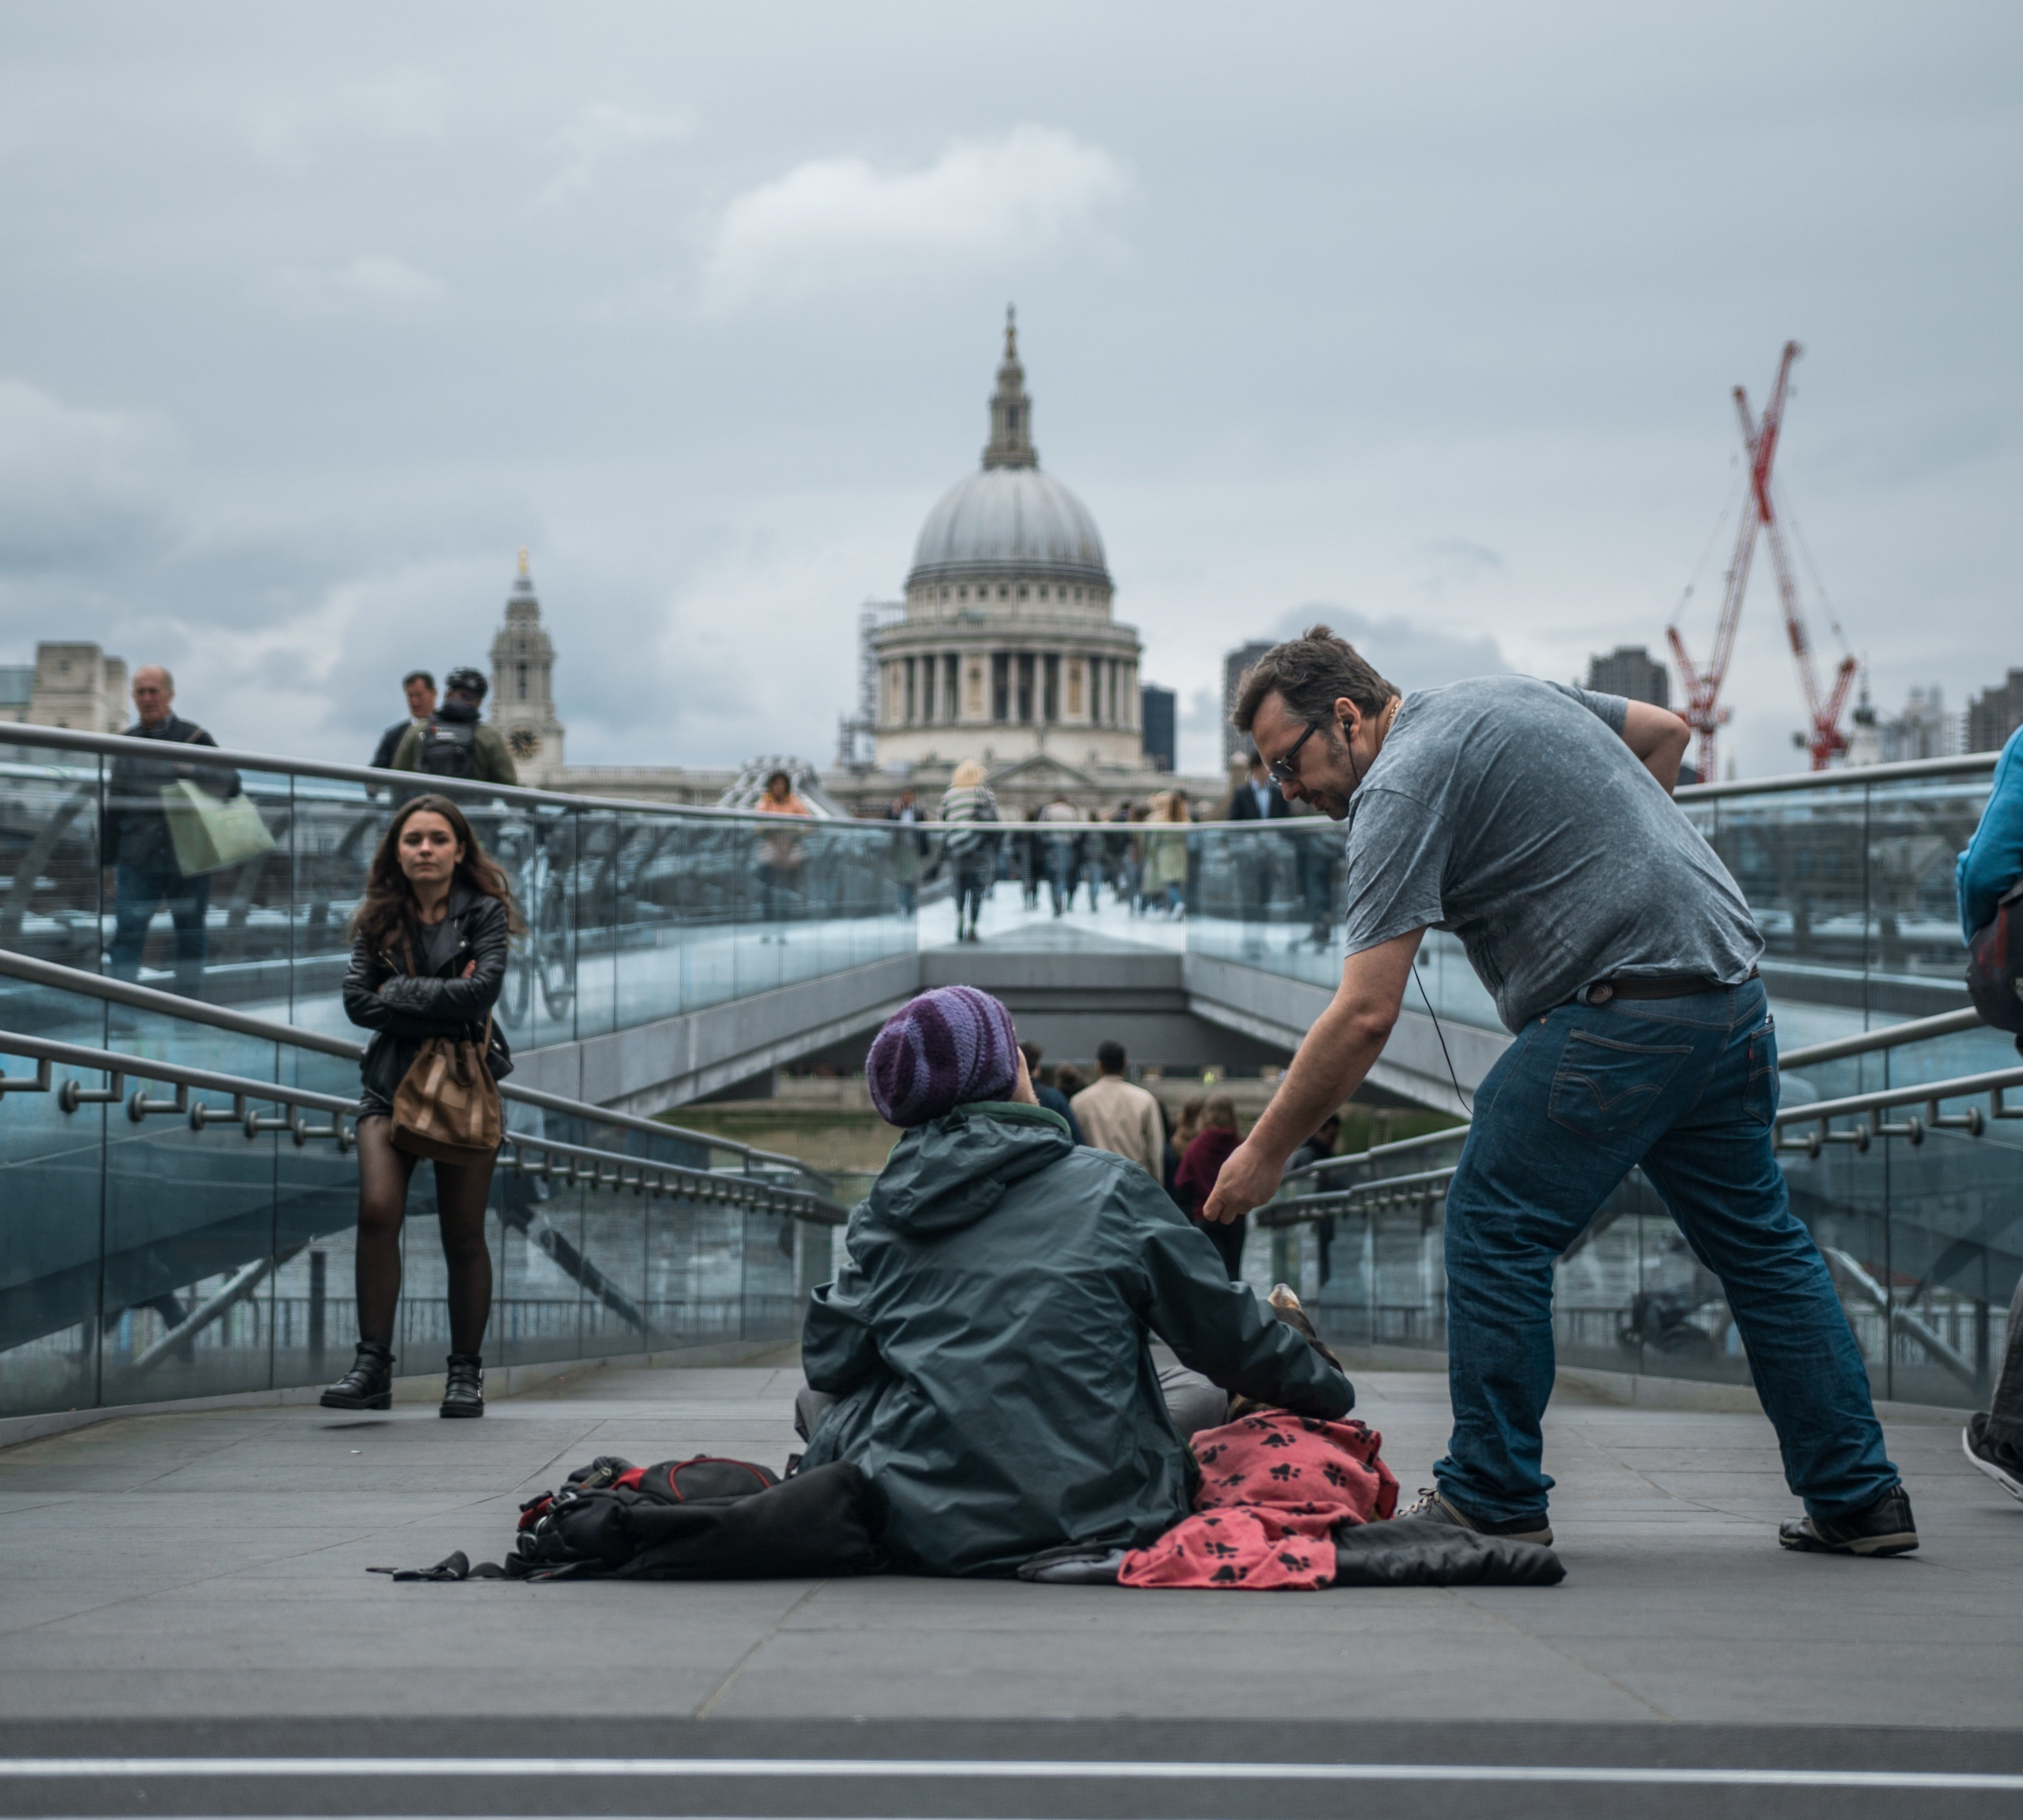 Man helps a homeless person | Photo: Unsplash